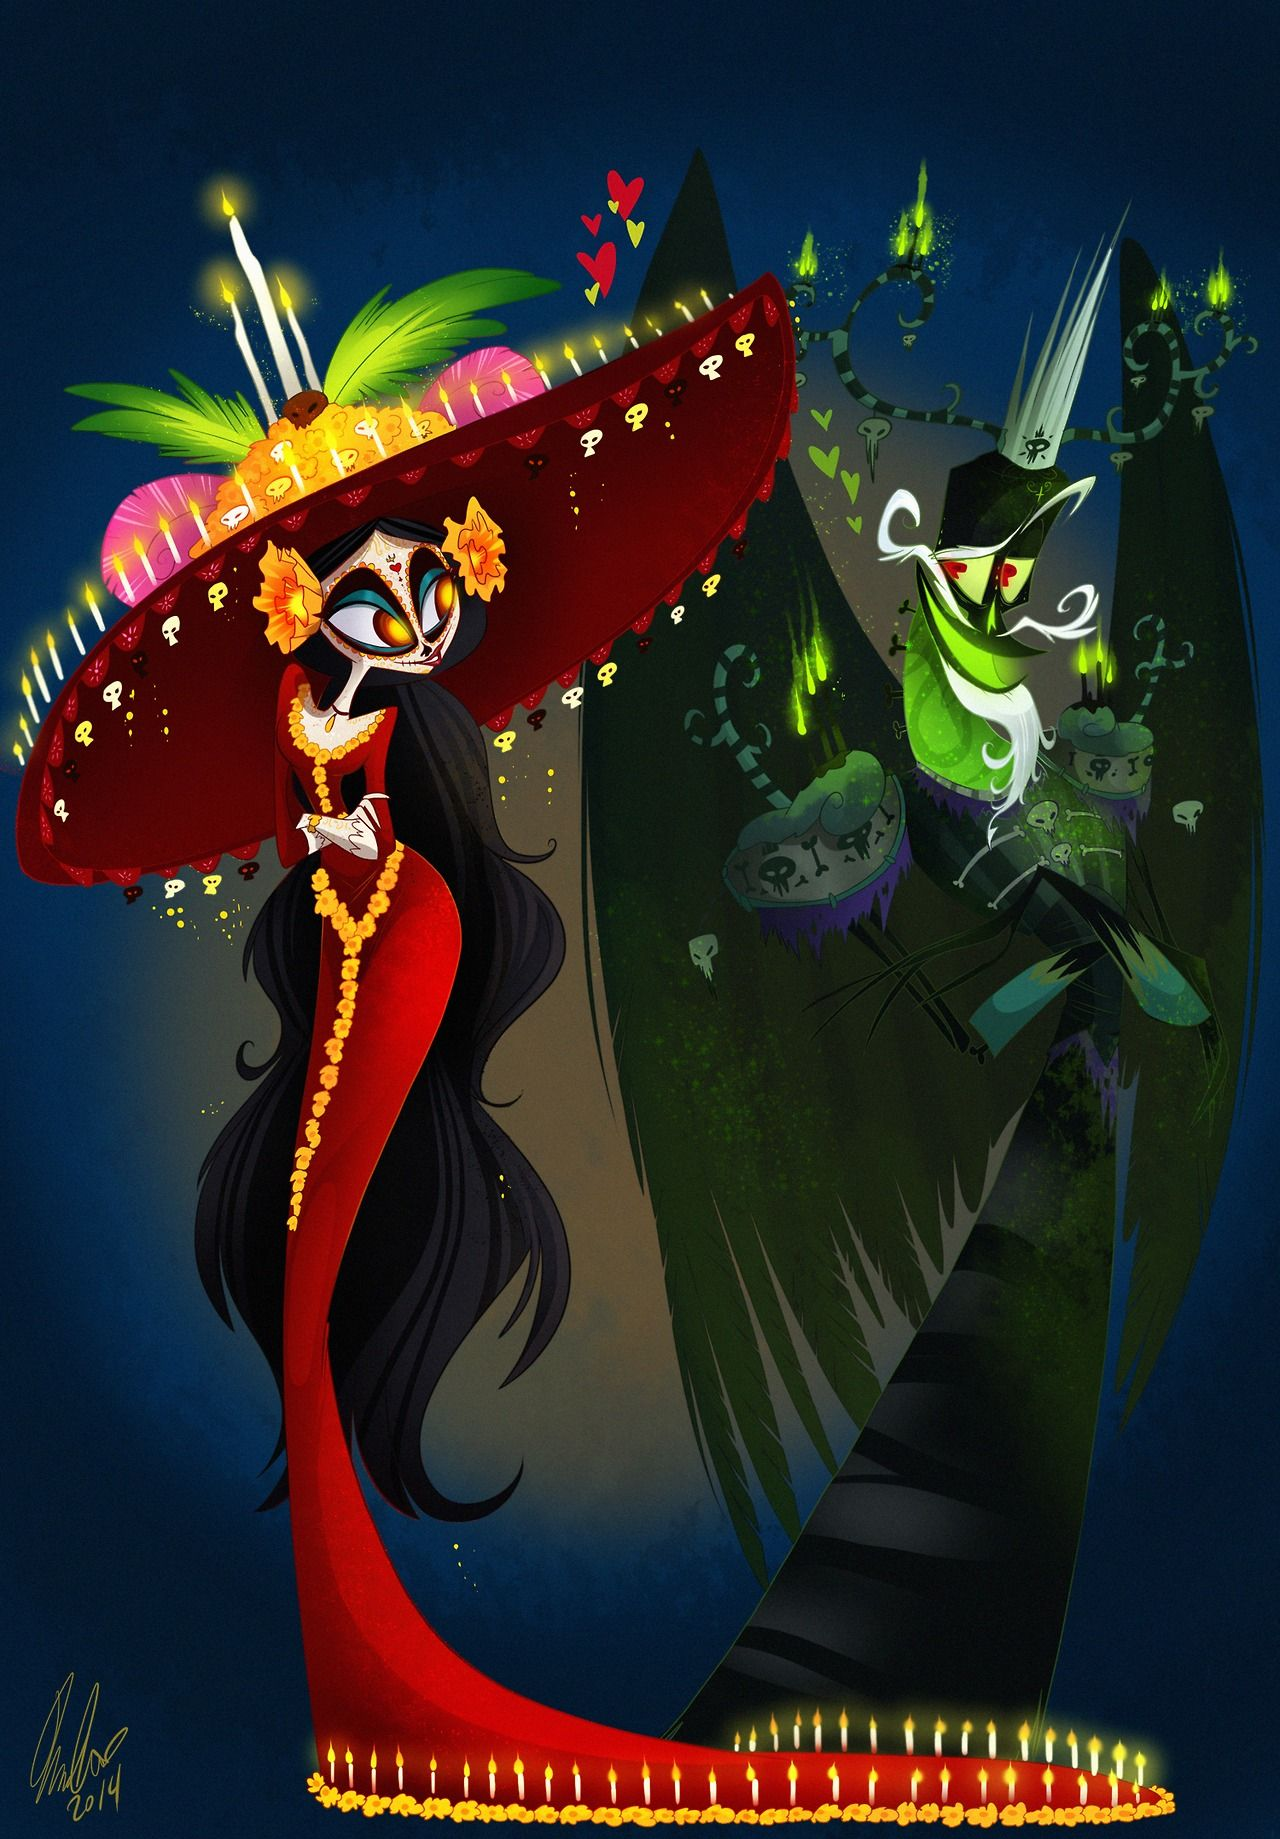 El Libro De La Vida Catrina The Book Of Life The Book Of Life Libro De La Vida